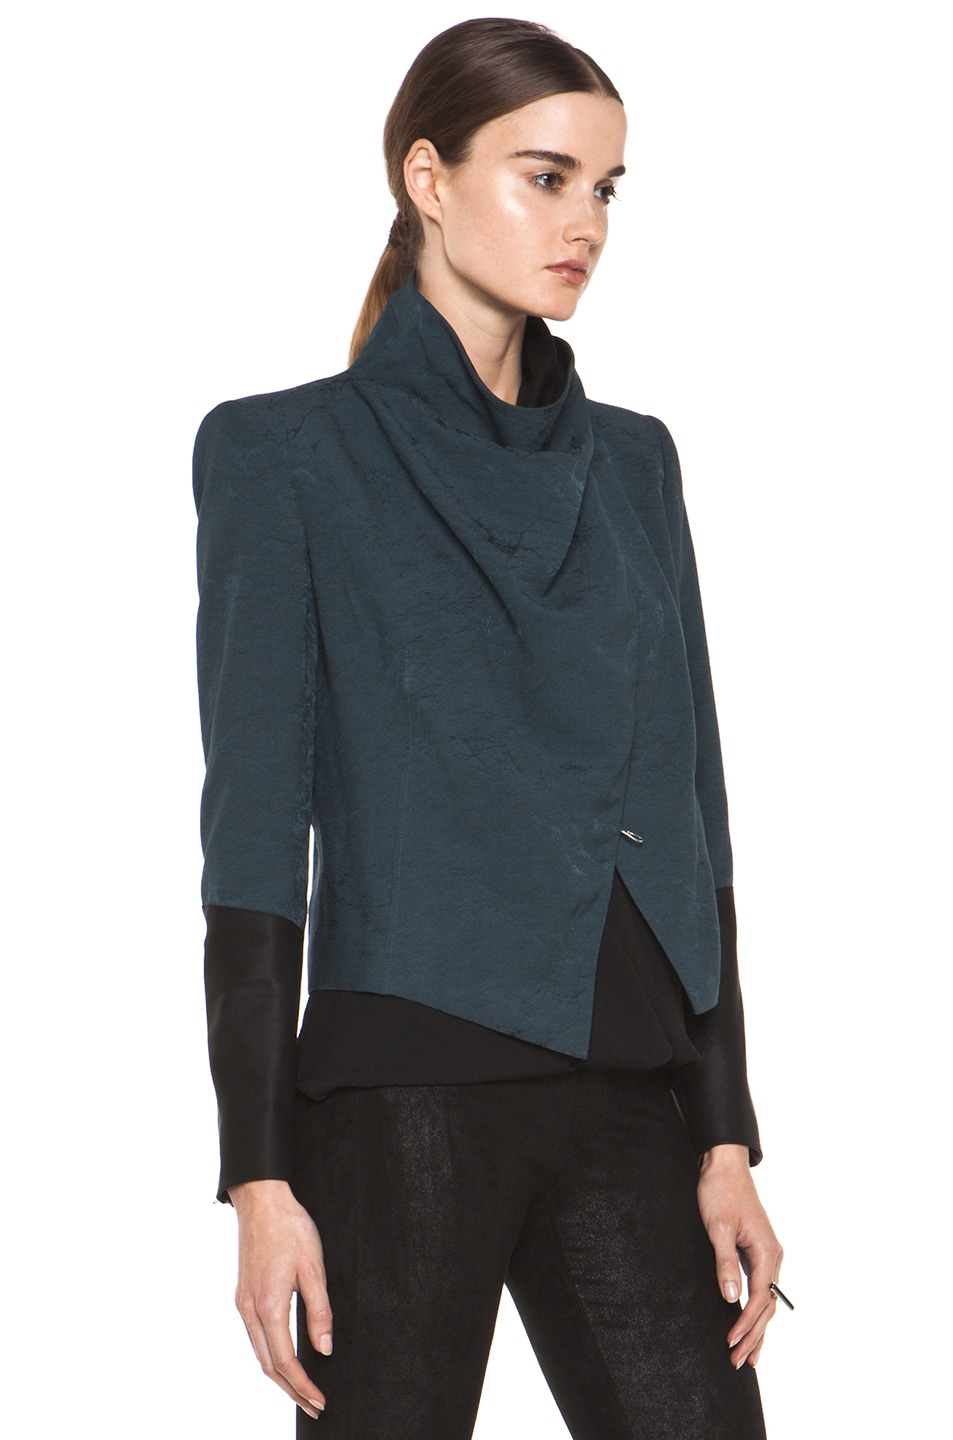 Image 4 of Helmut Lang Perma Jacquard Sleeve Combo Jacket in Dusty Sapphire